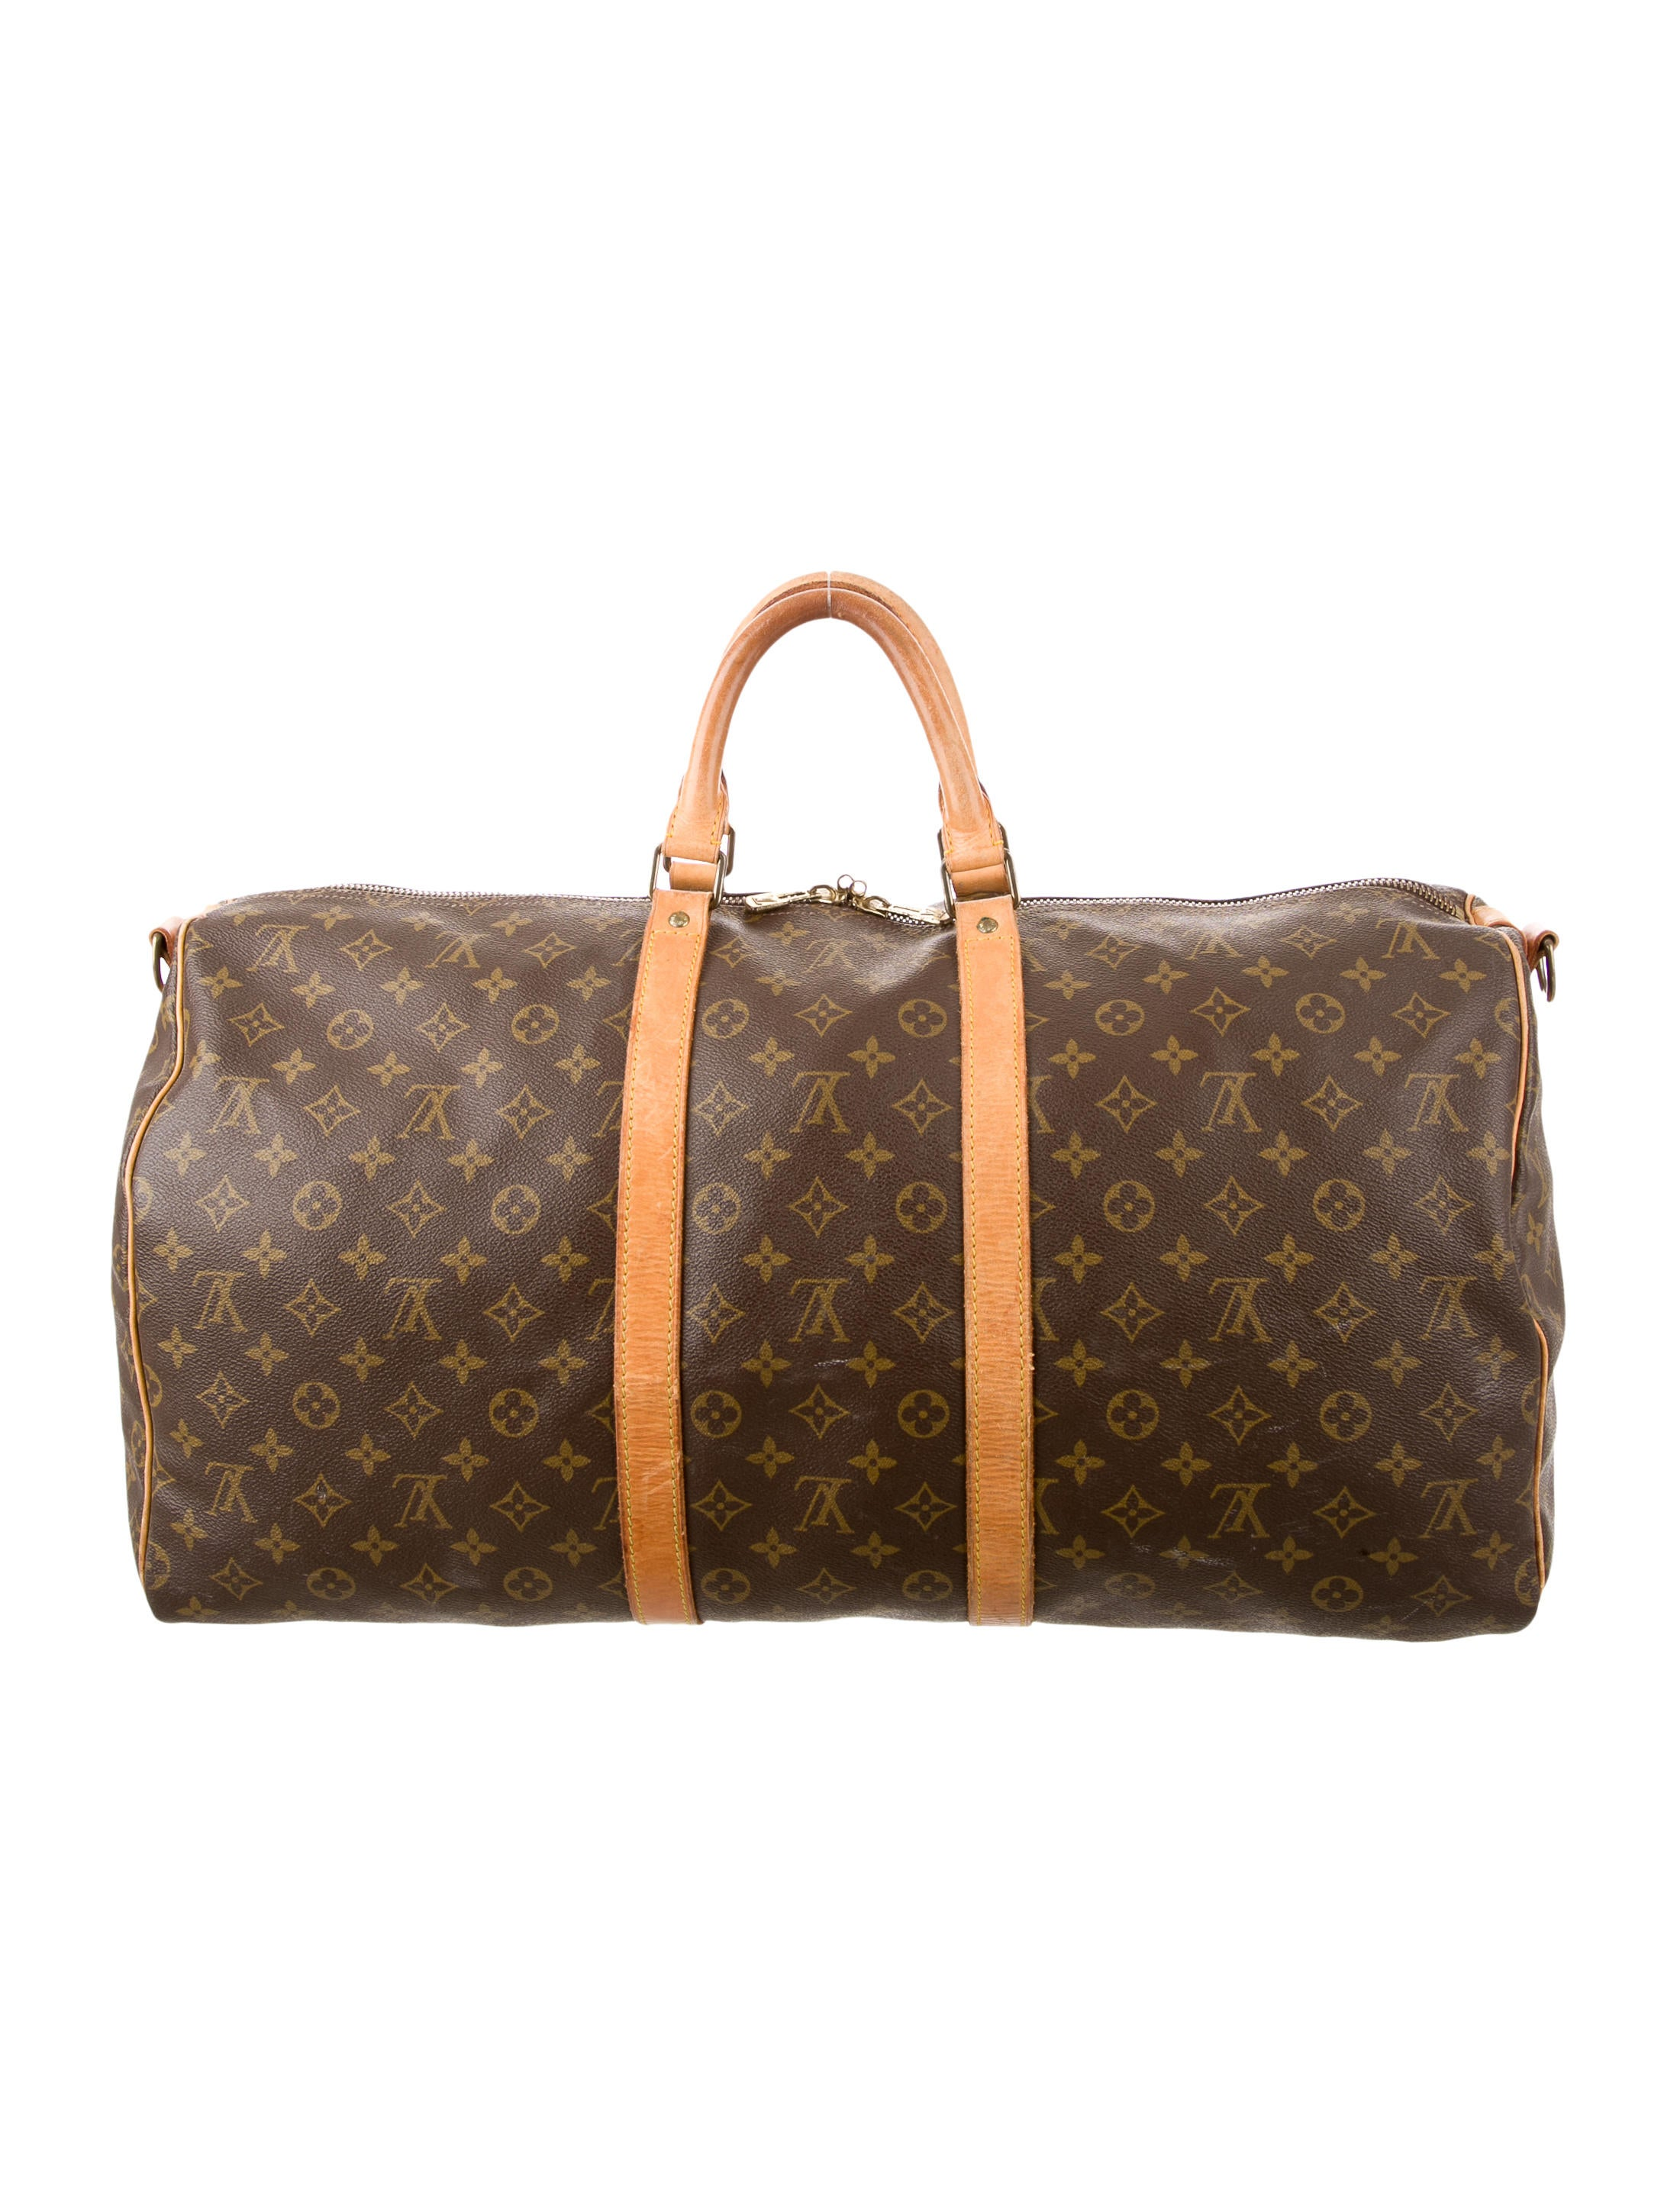 louis vuitton monogram keepall bandouli re 55 handbags lou110881 the realreal. Black Bedroom Furniture Sets. Home Design Ideas